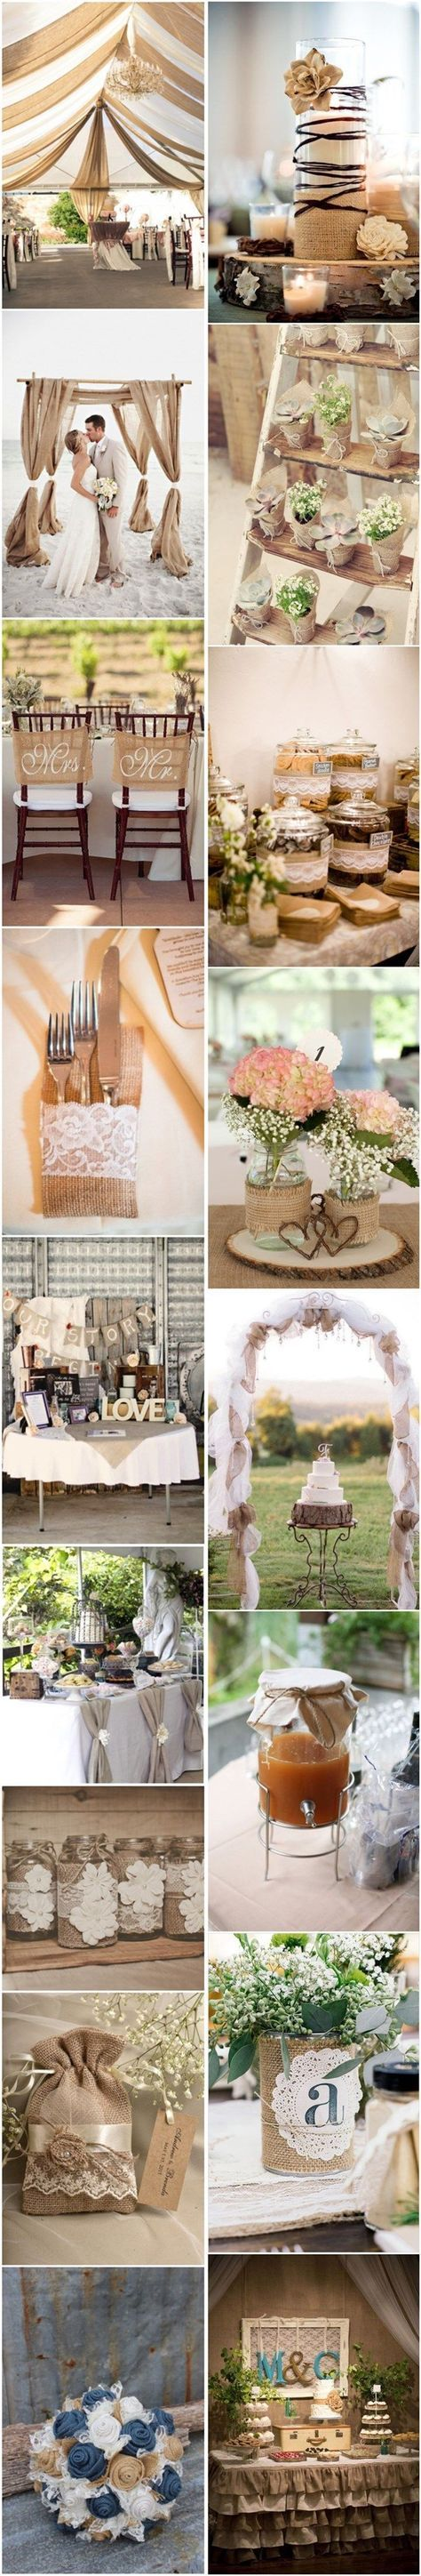 54 best Burlap Wedding images by My